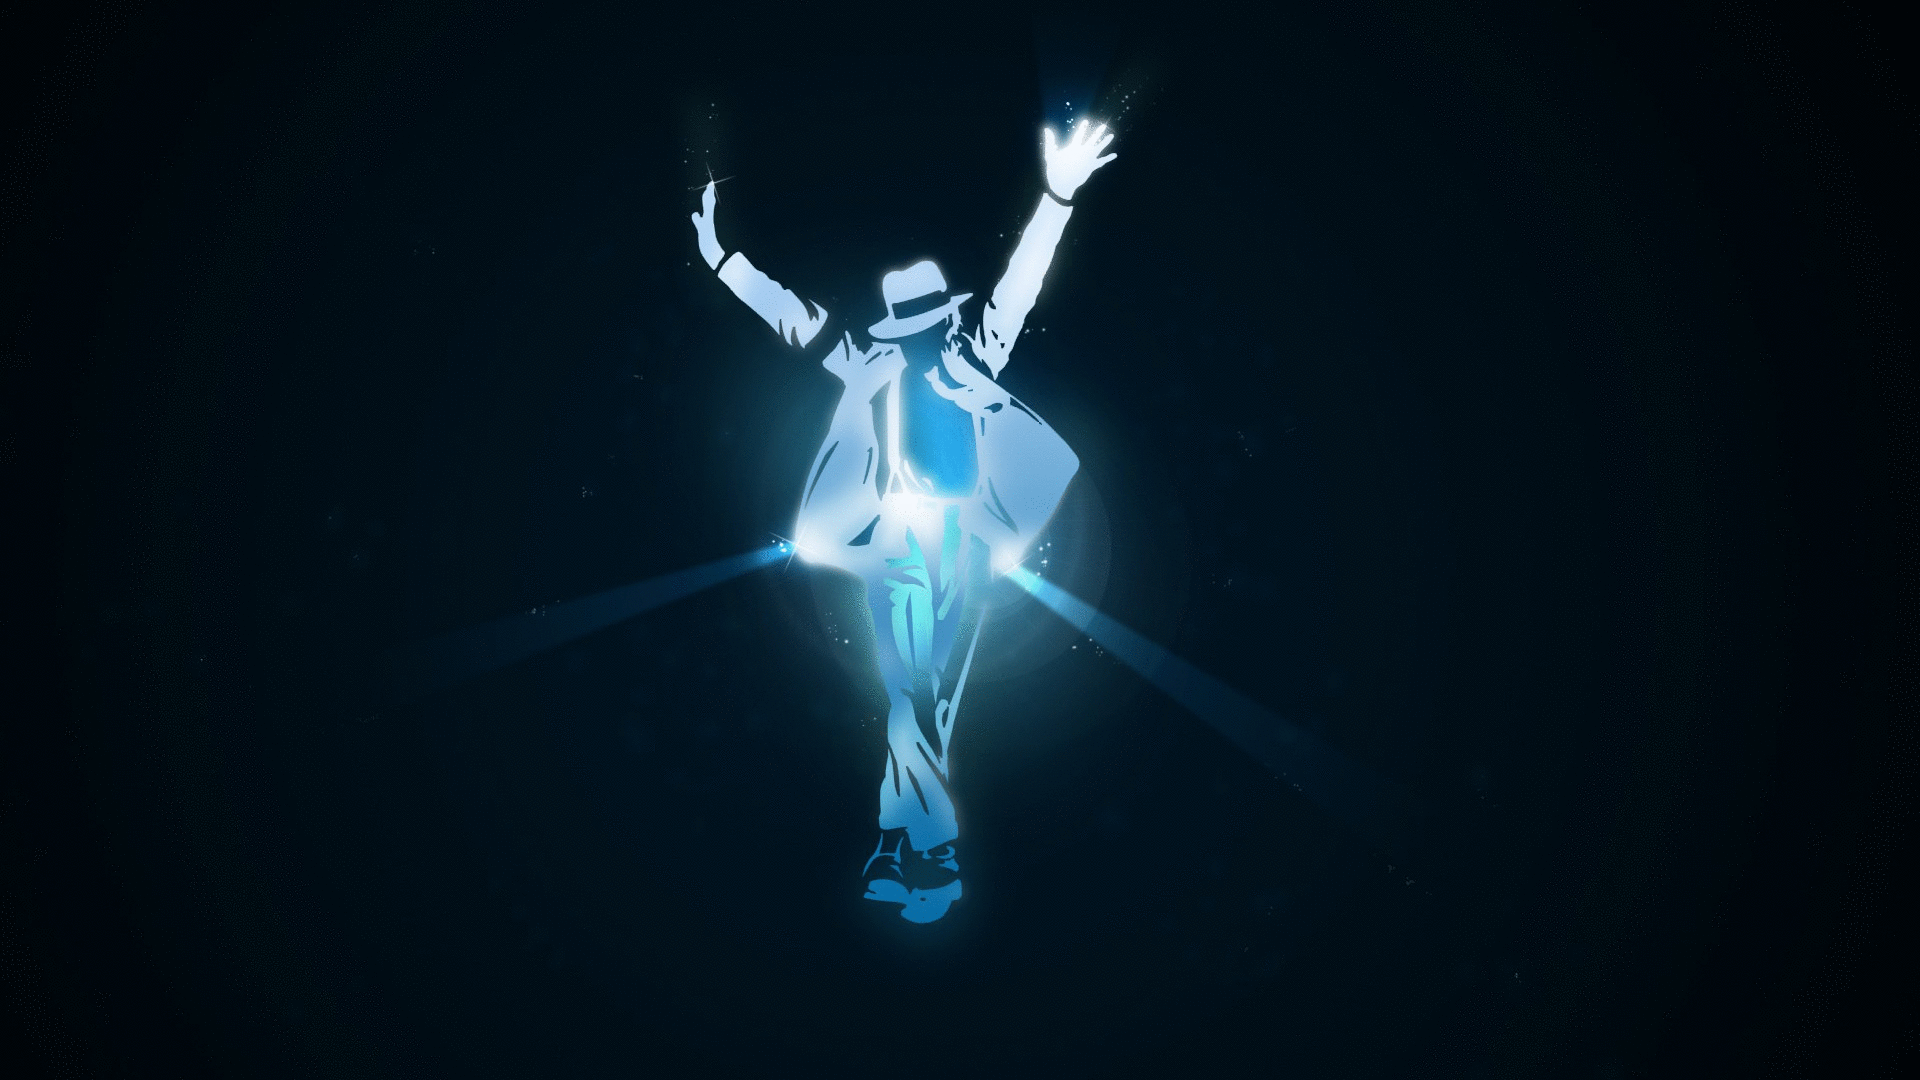 Iron man hd wallpapers backgrounds wallpaper abyss - 101 Michael Jackson Hd Wallpapers Backgrounds Wallpaper Abyss